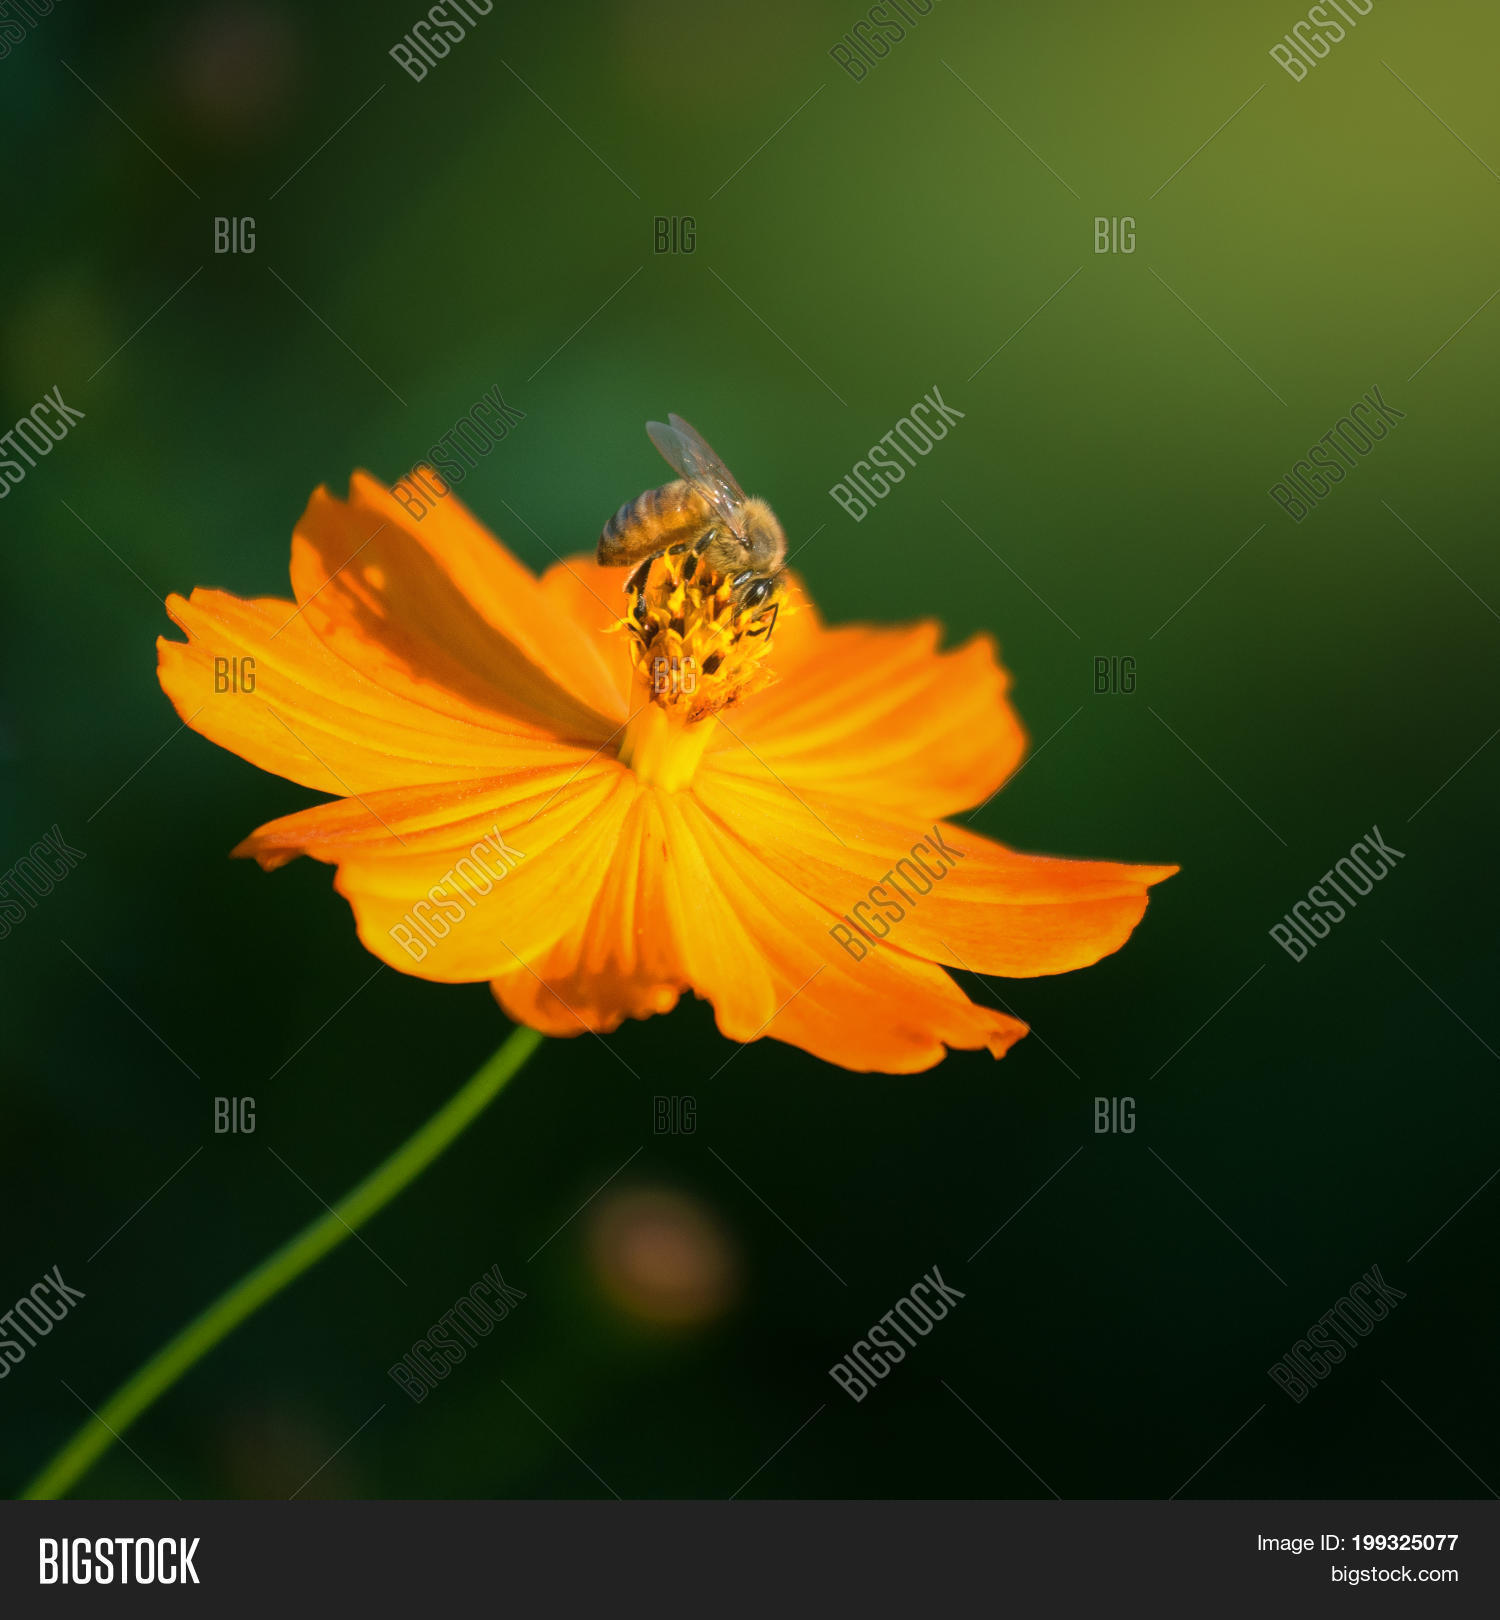 Beautiful yellow image photo free trial bigstock beautiful yellow cosmos flower yellow flower of mexican diasy cosmos spanish needle mightylinksfo